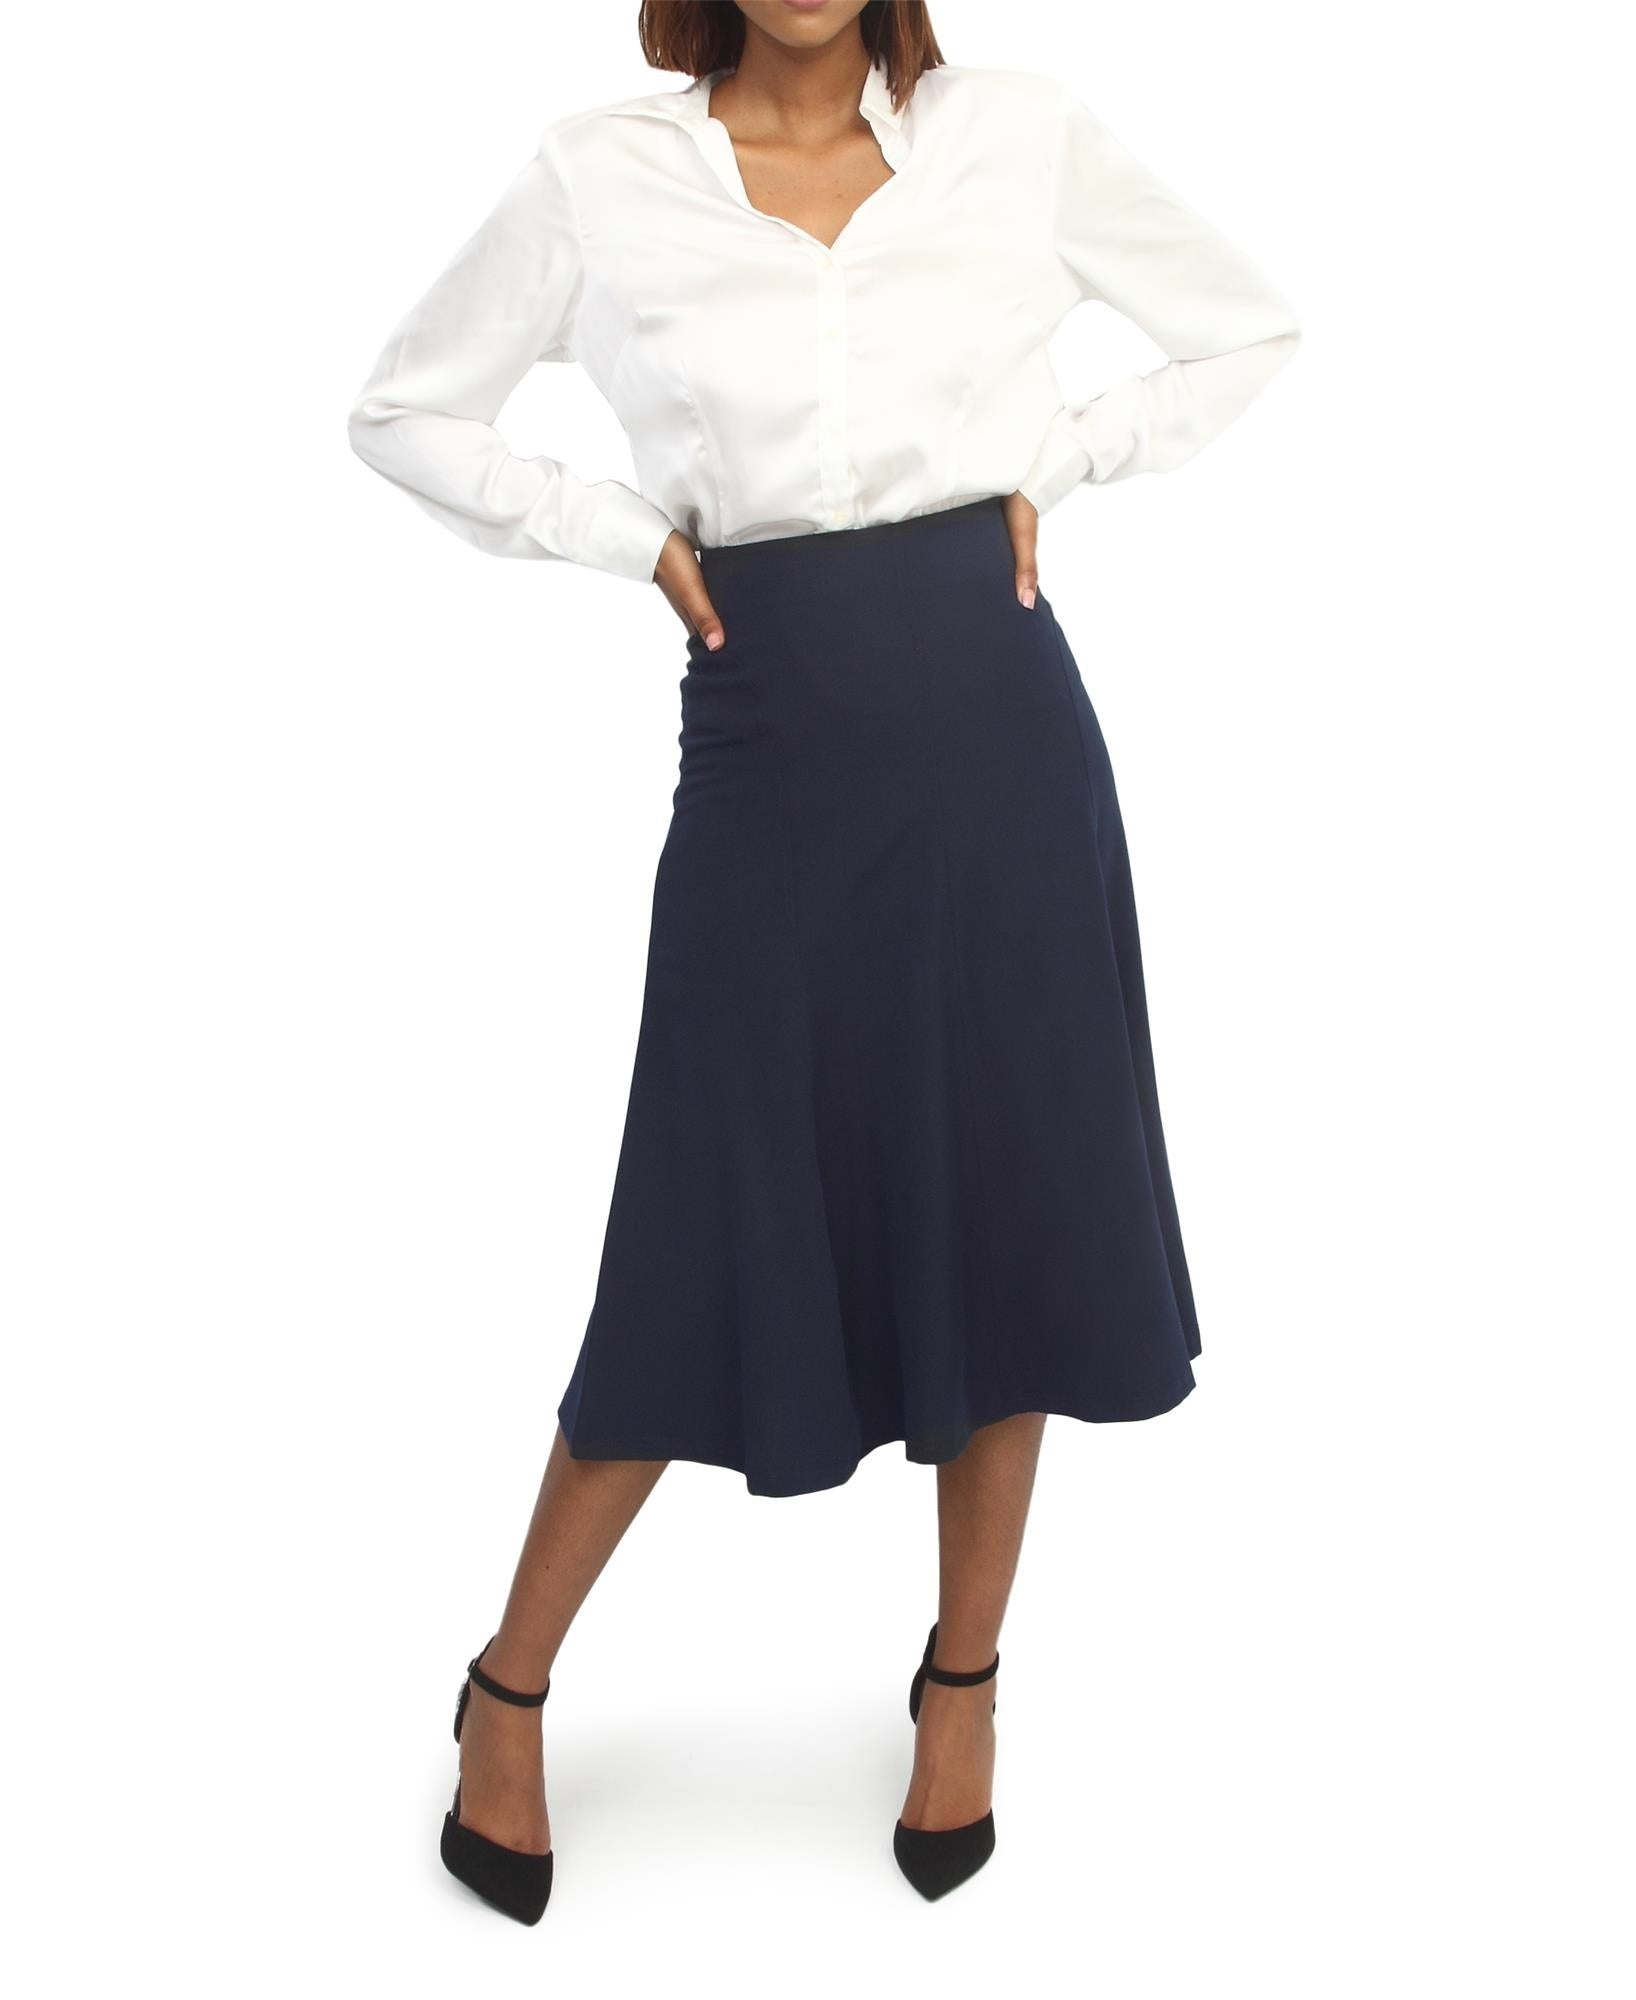 Flared Formal Skirt - Navy